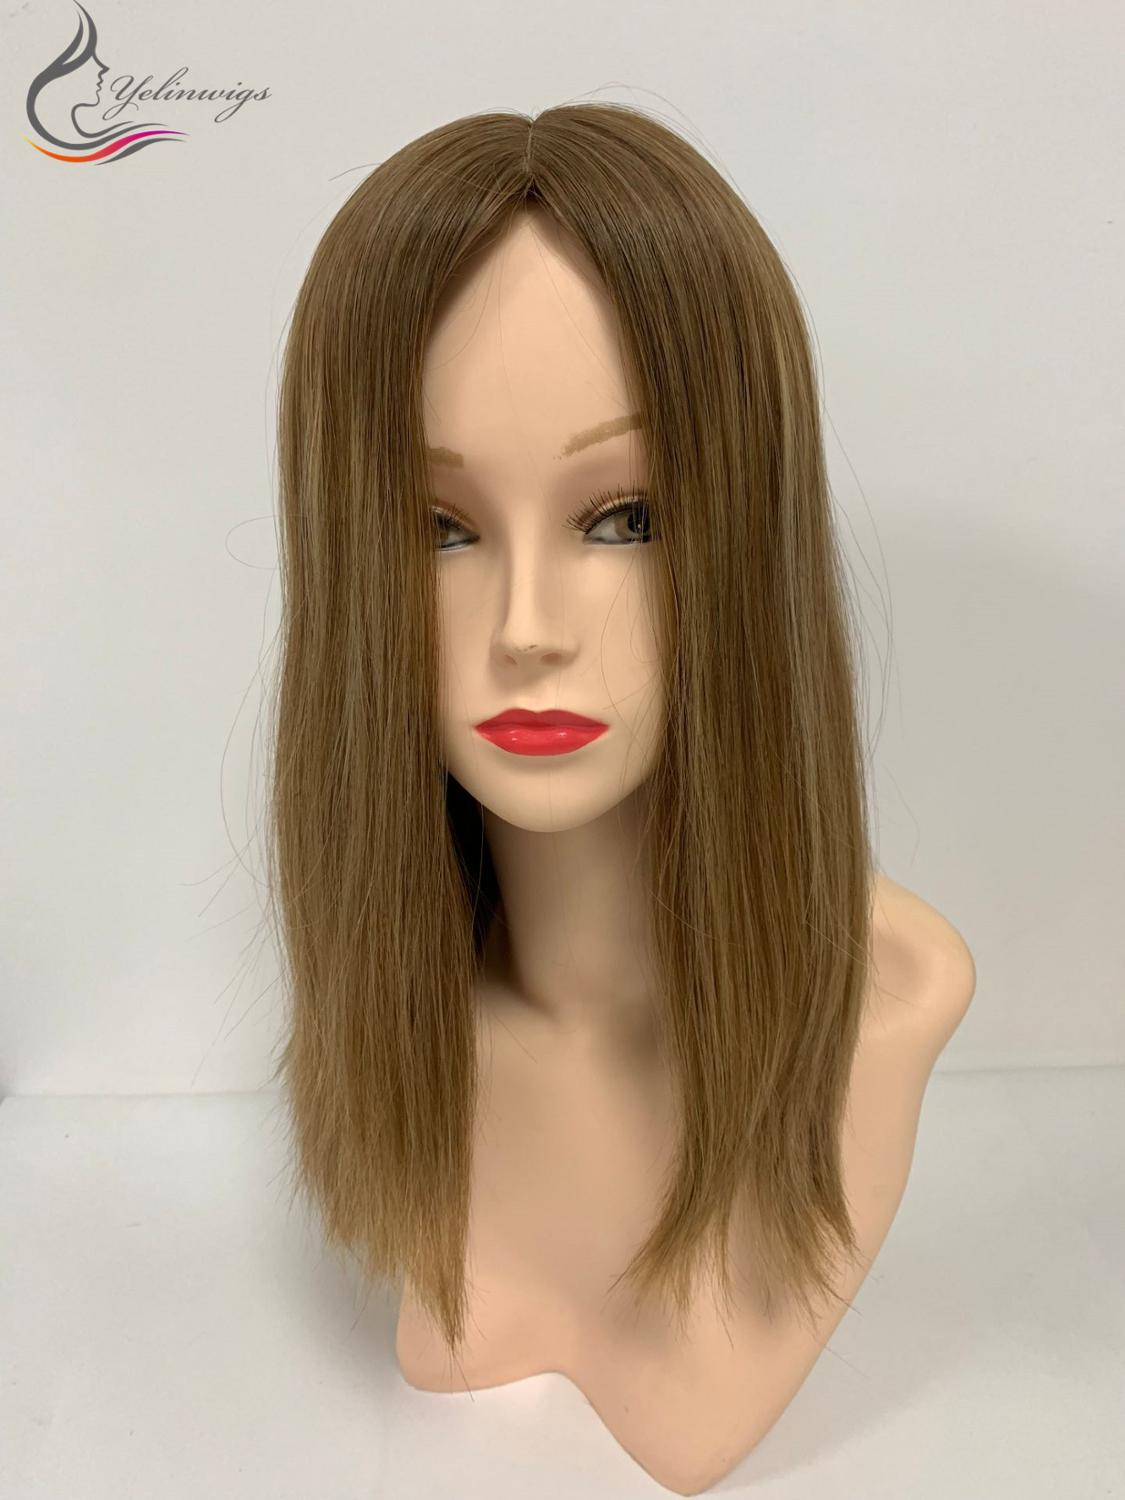 Natural Jewish Kosher Wig 100% High Quality Silk Top Layer European Virgin Hair Wigs With Body